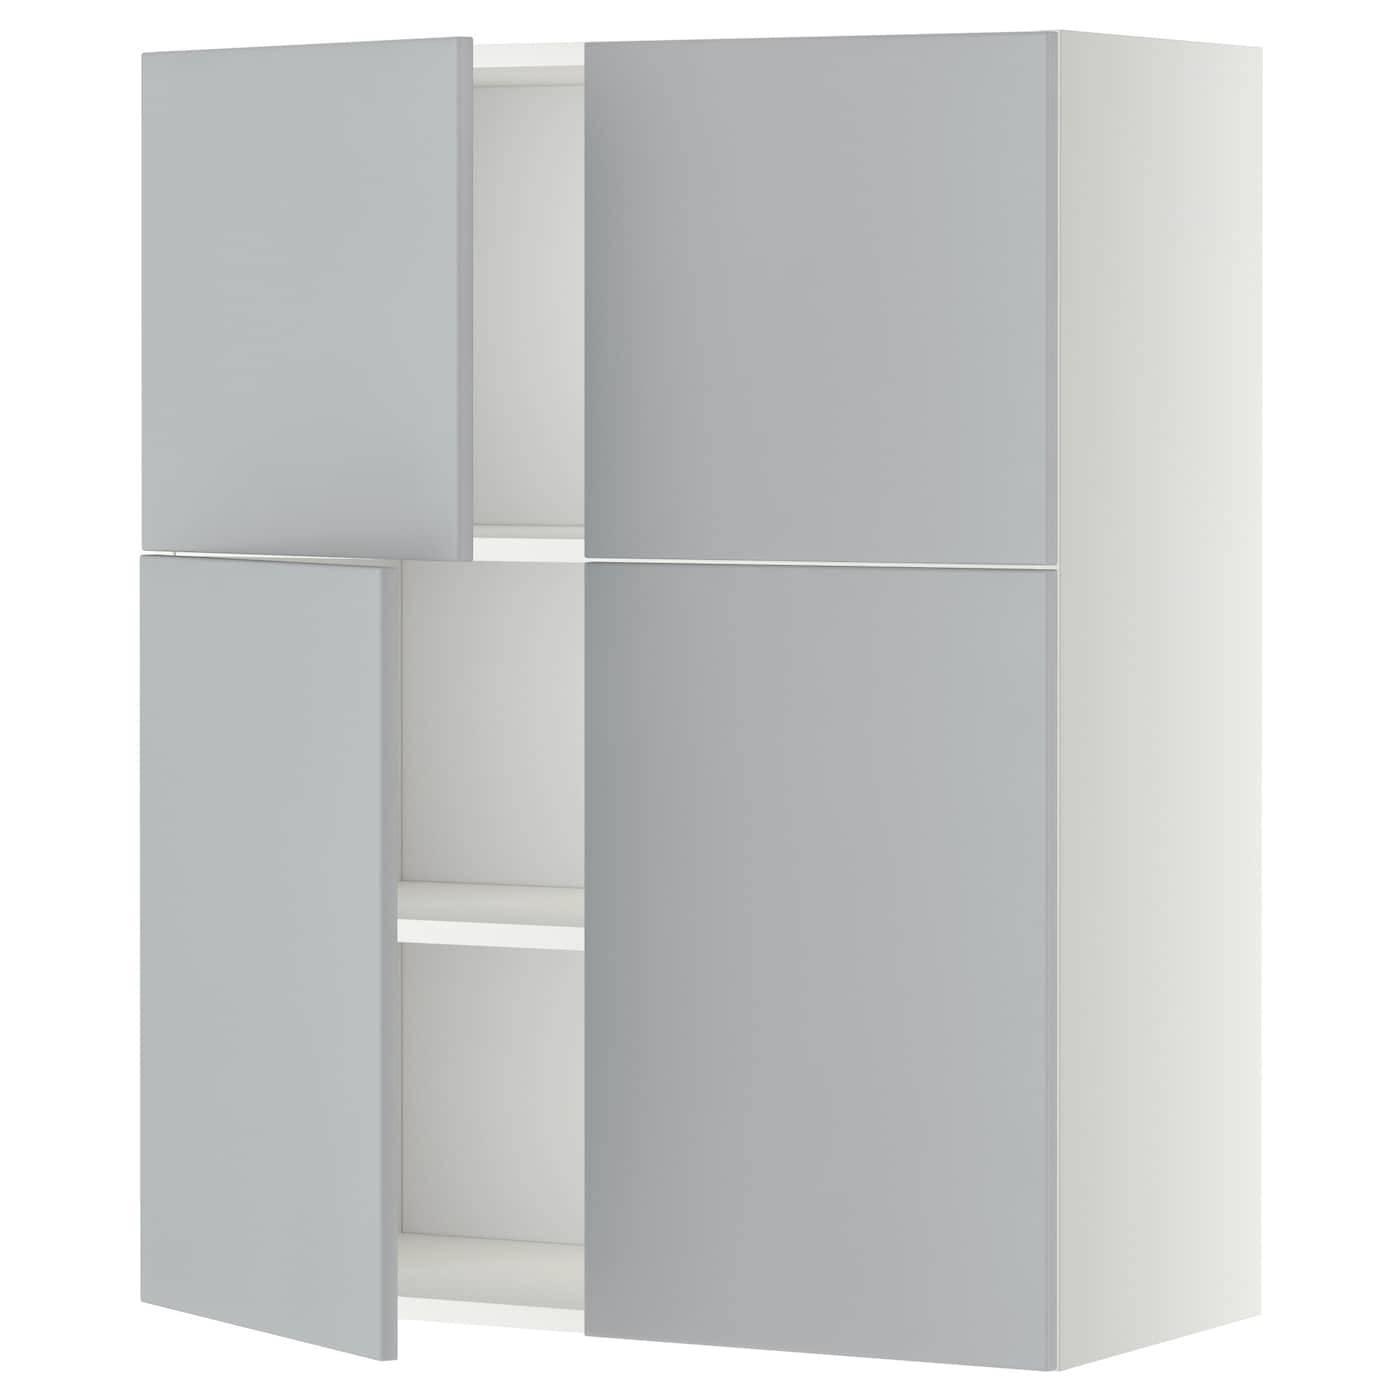 Metod wall cabinet with shelves 4 doors white veddinge - Ikea cabinet doors on existing cabinets ...